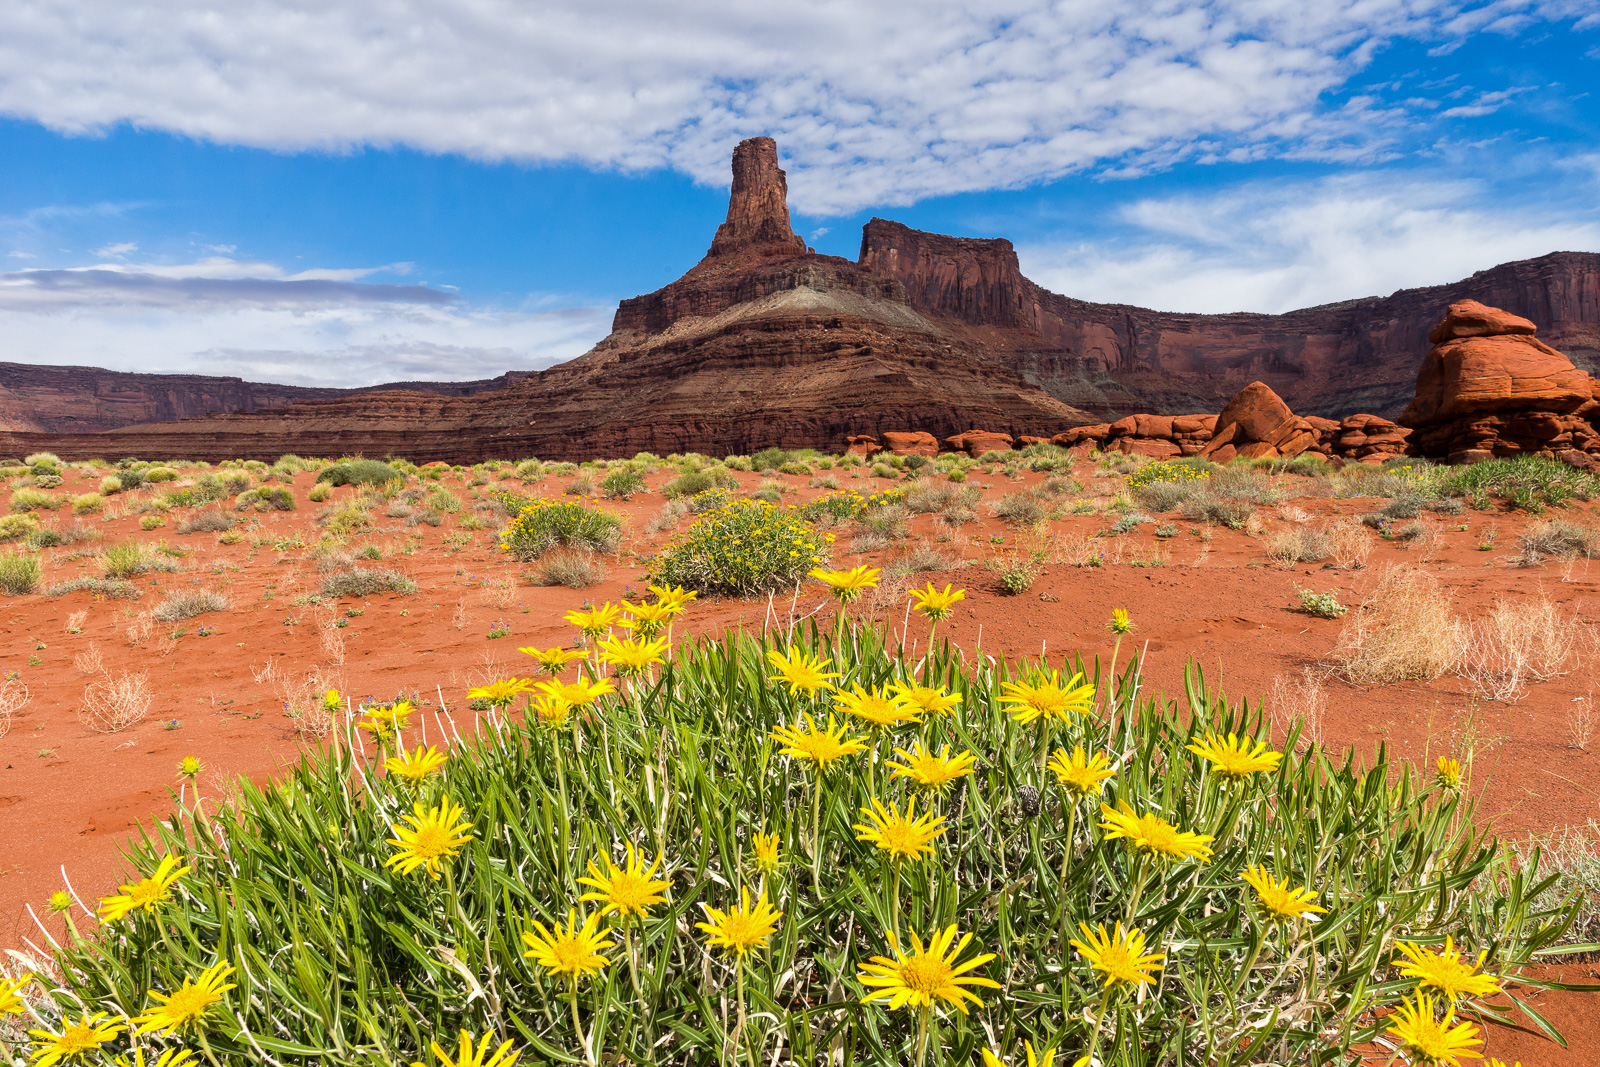 Wildflowers in Sand Dunes Below Chimney Rock - Moab, Utah